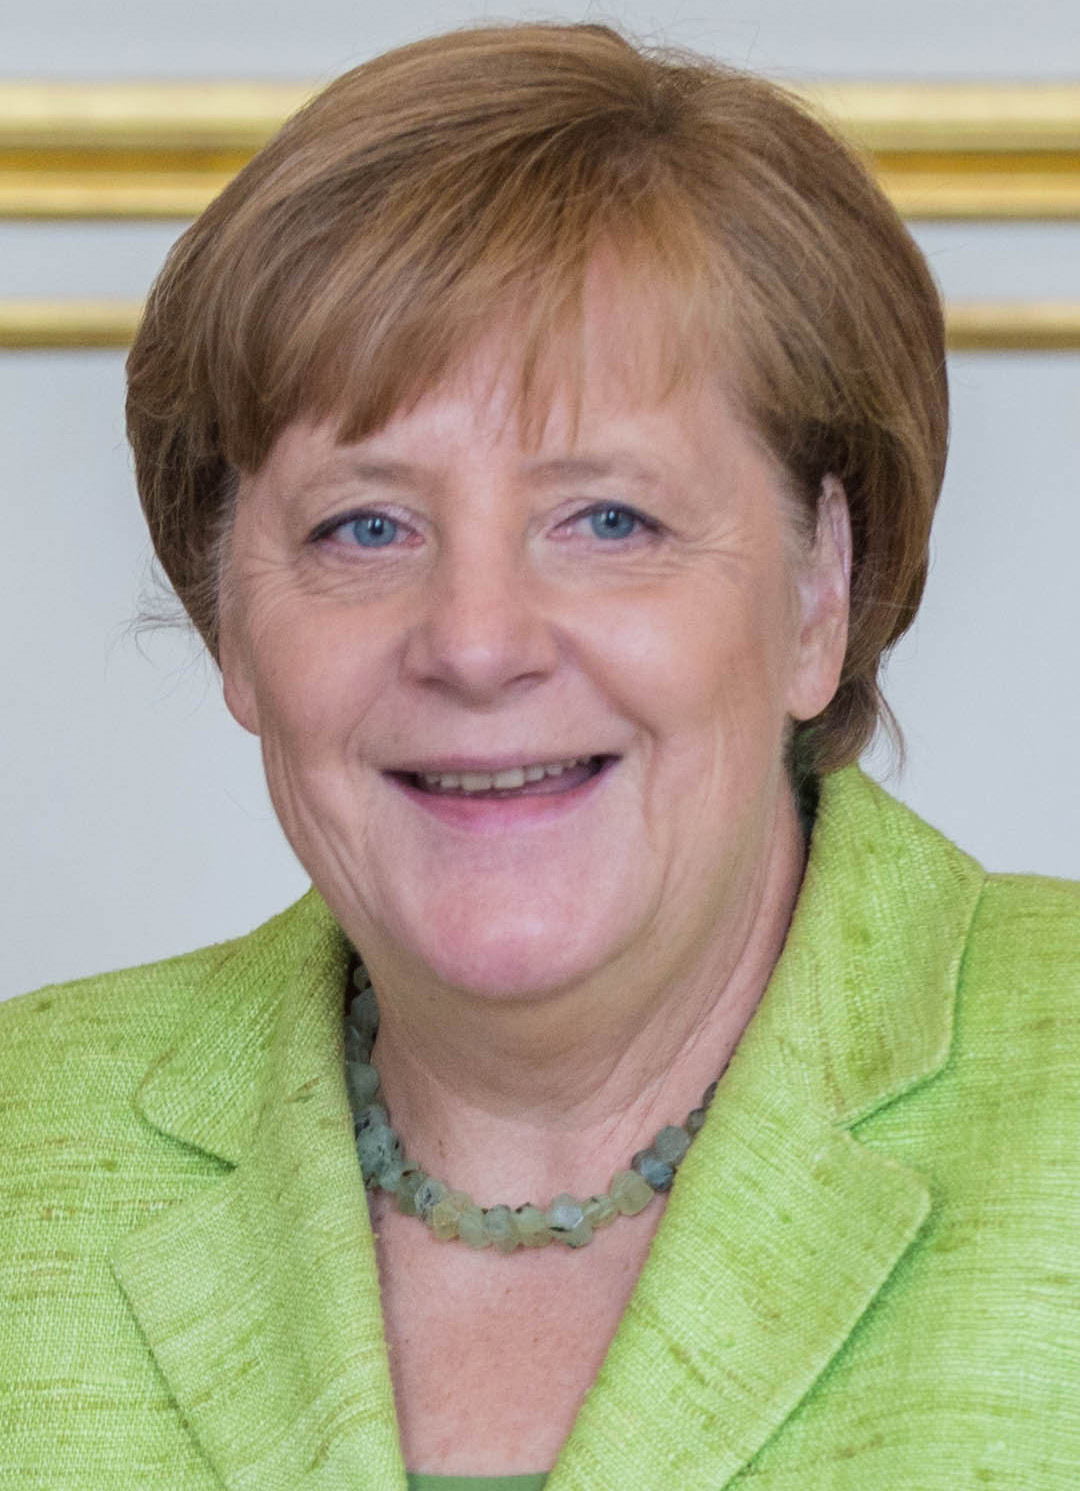 Angela Merkel Simple English The Free Encyclopedia